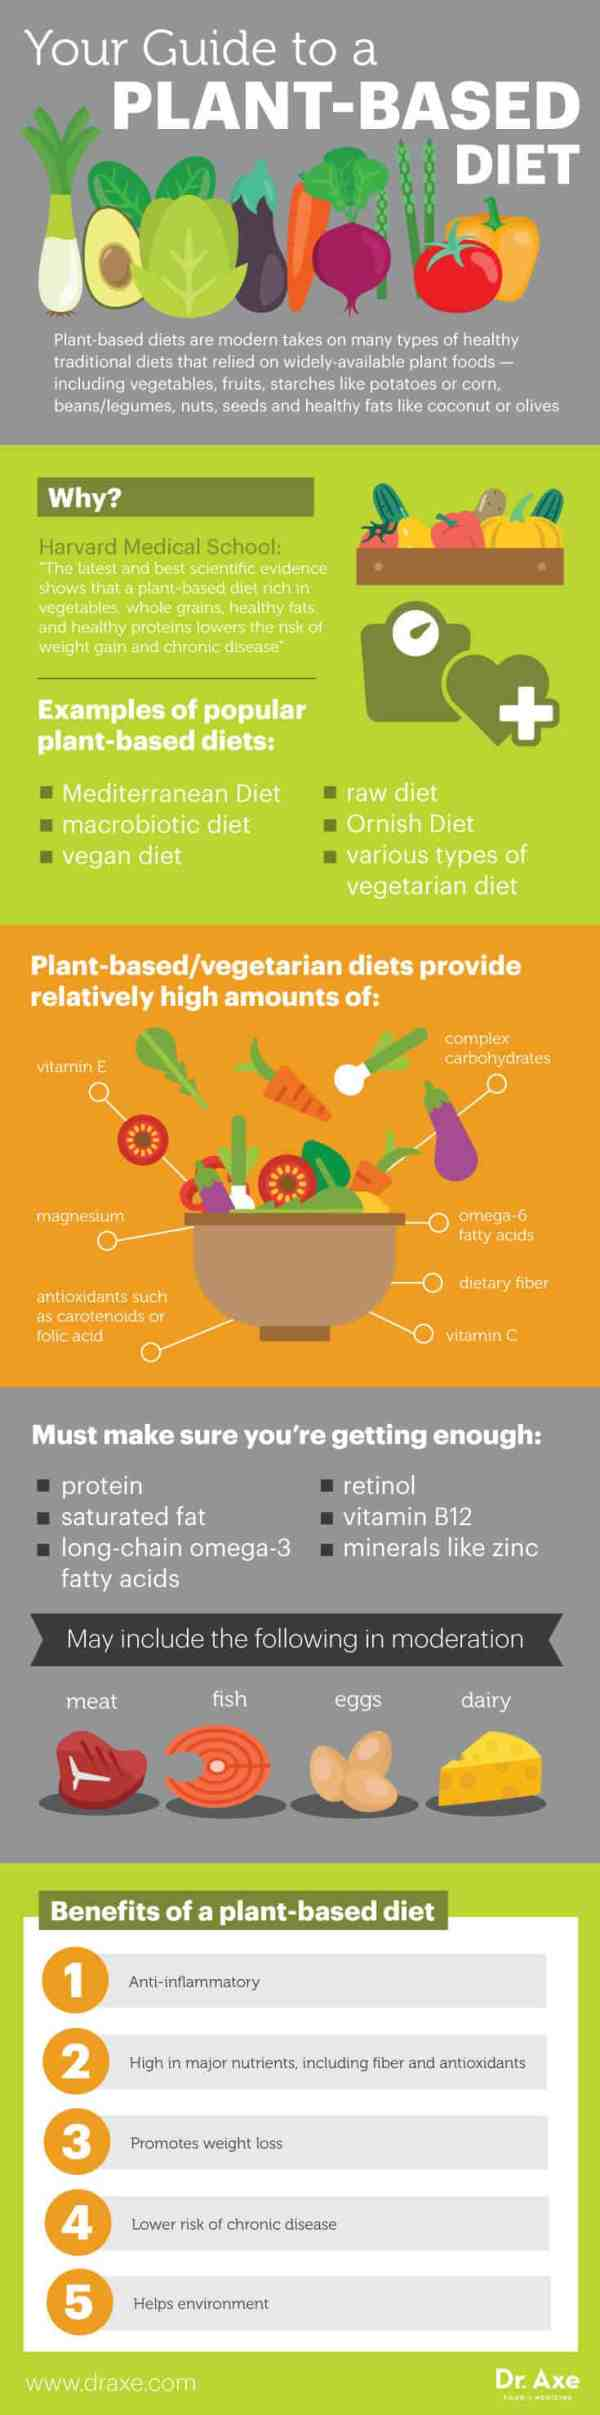 Plant-based diet guide - Dr. Axe